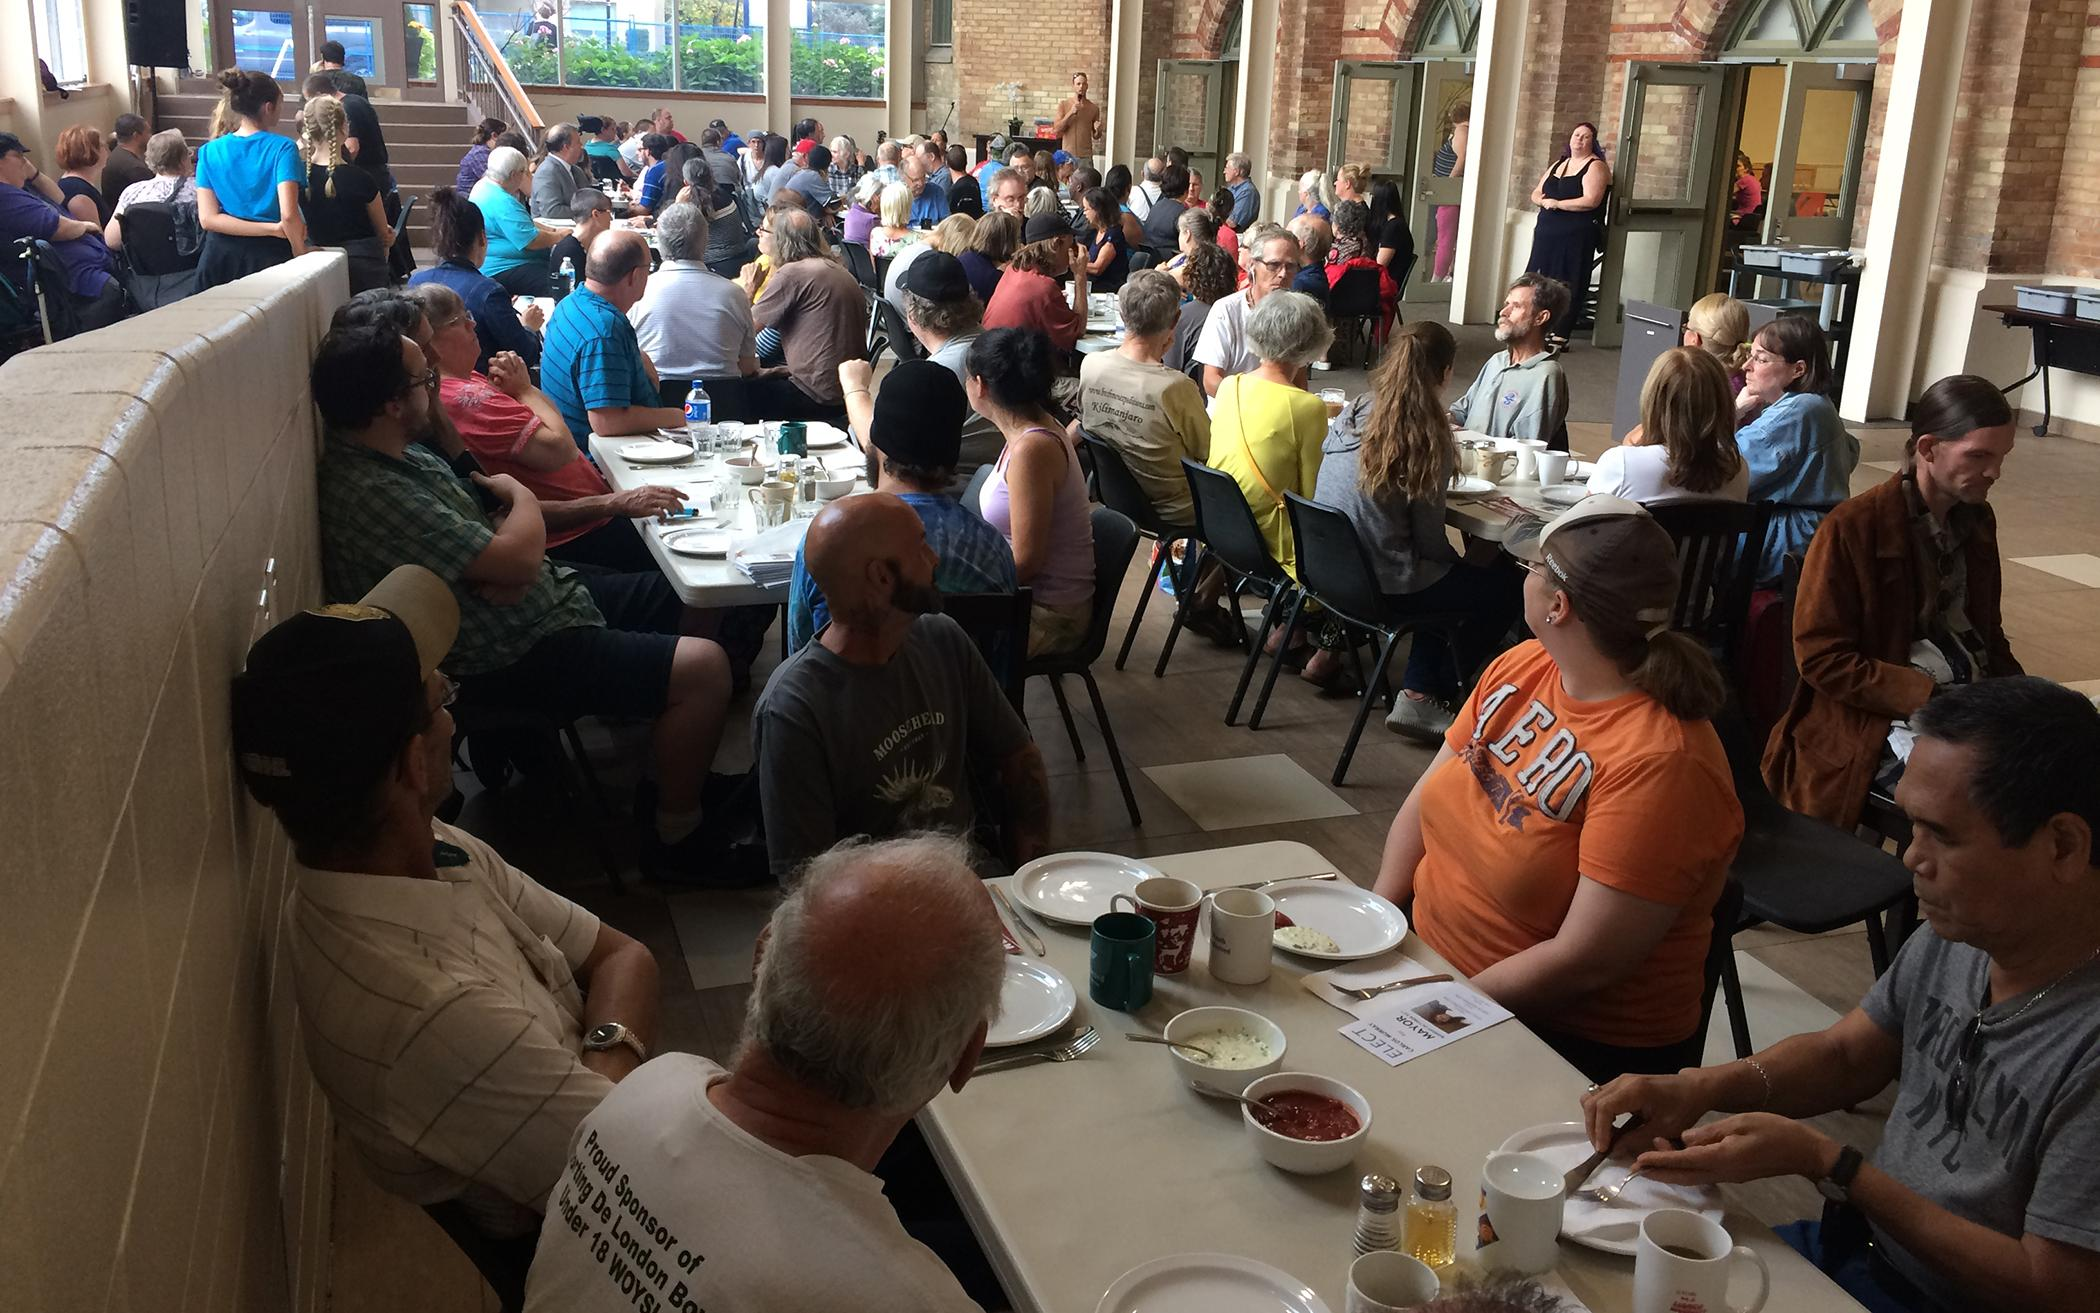 Churches Host Election Discussion: 'What Would Your Vision as a Response to Poverty Be?'